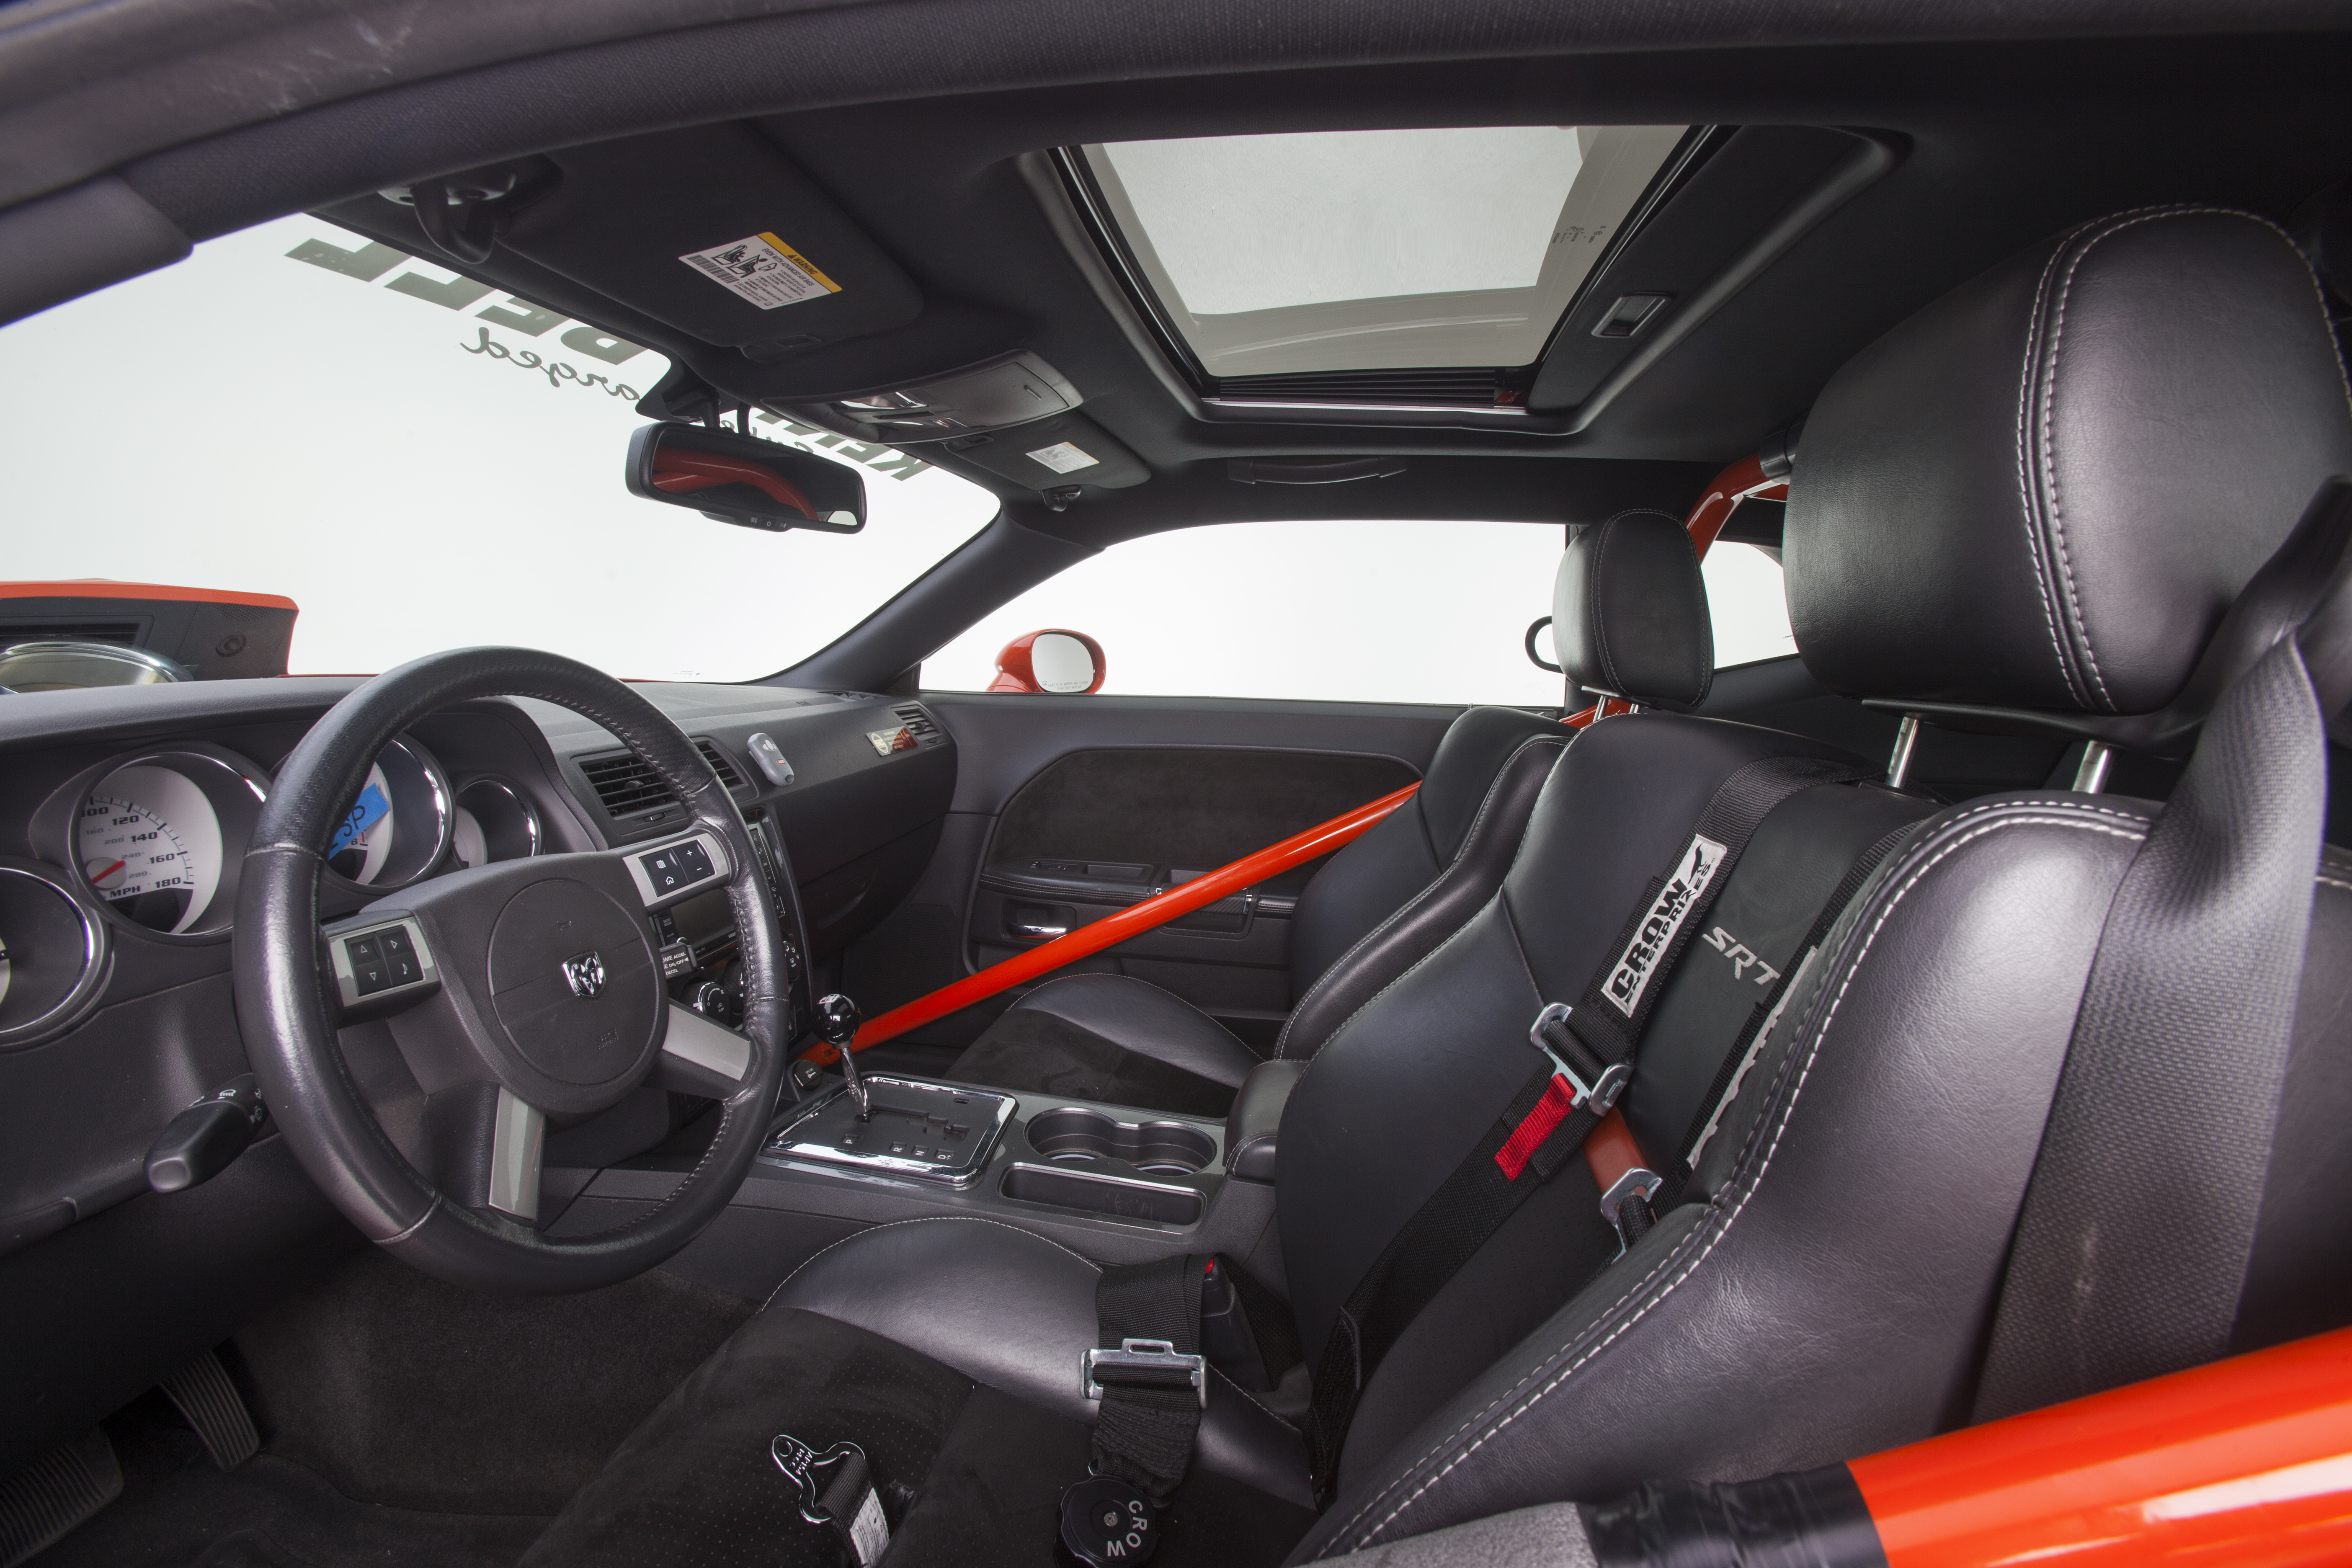 Other than the racing harnesses and a rollbar, the Challenger's interior is alarmingly stock. Most race cars that are half as fast have interiors that are twice as ugly.